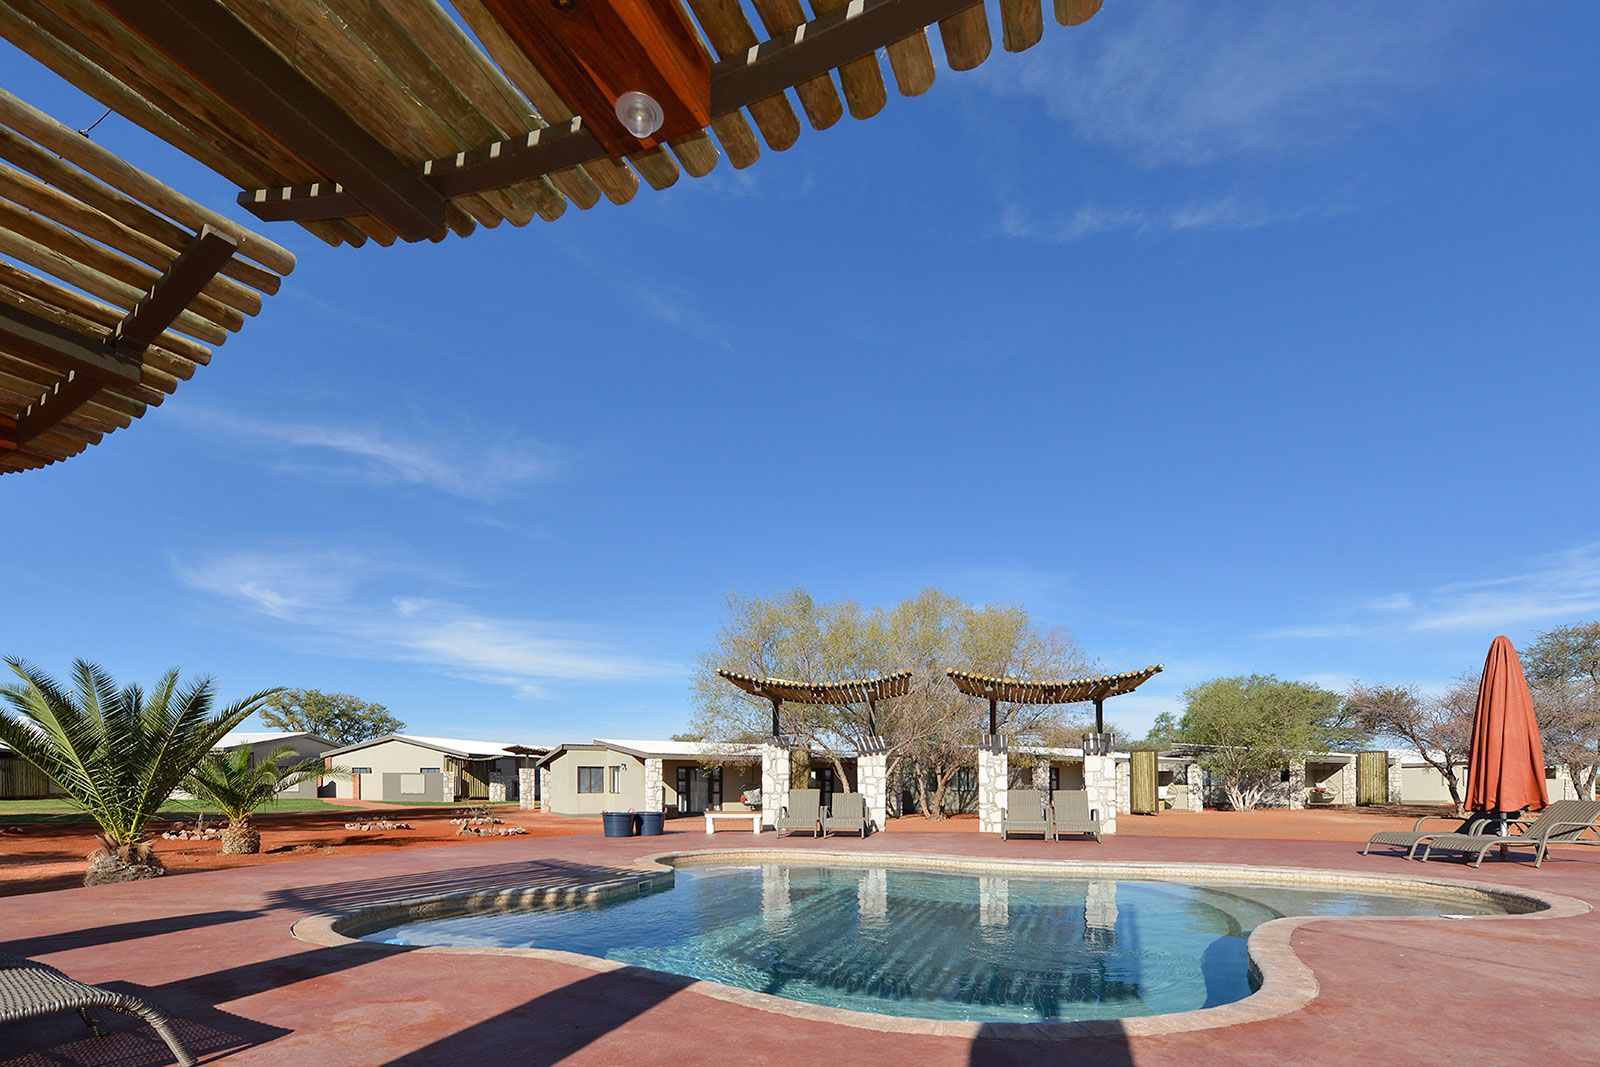 Kalahari Anib Lodge